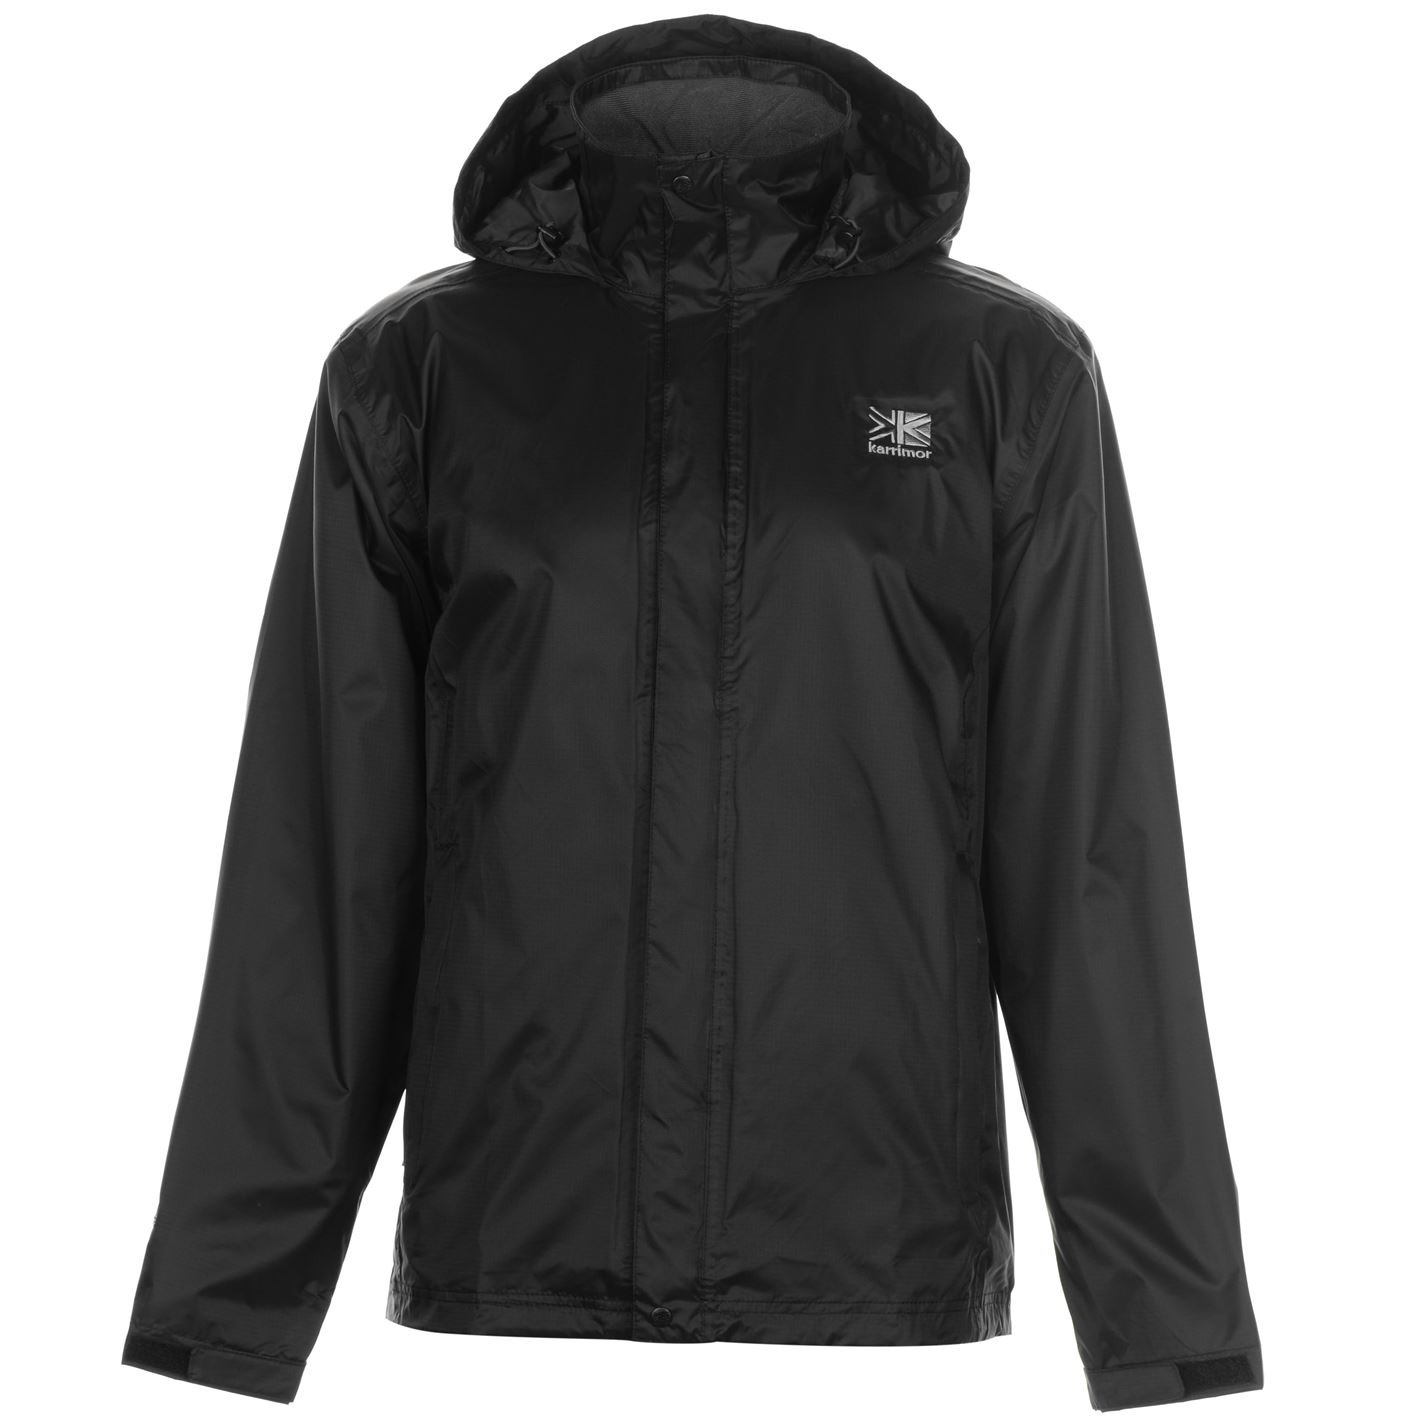 Karrimor Mens Sierra Jacket Mens Black L